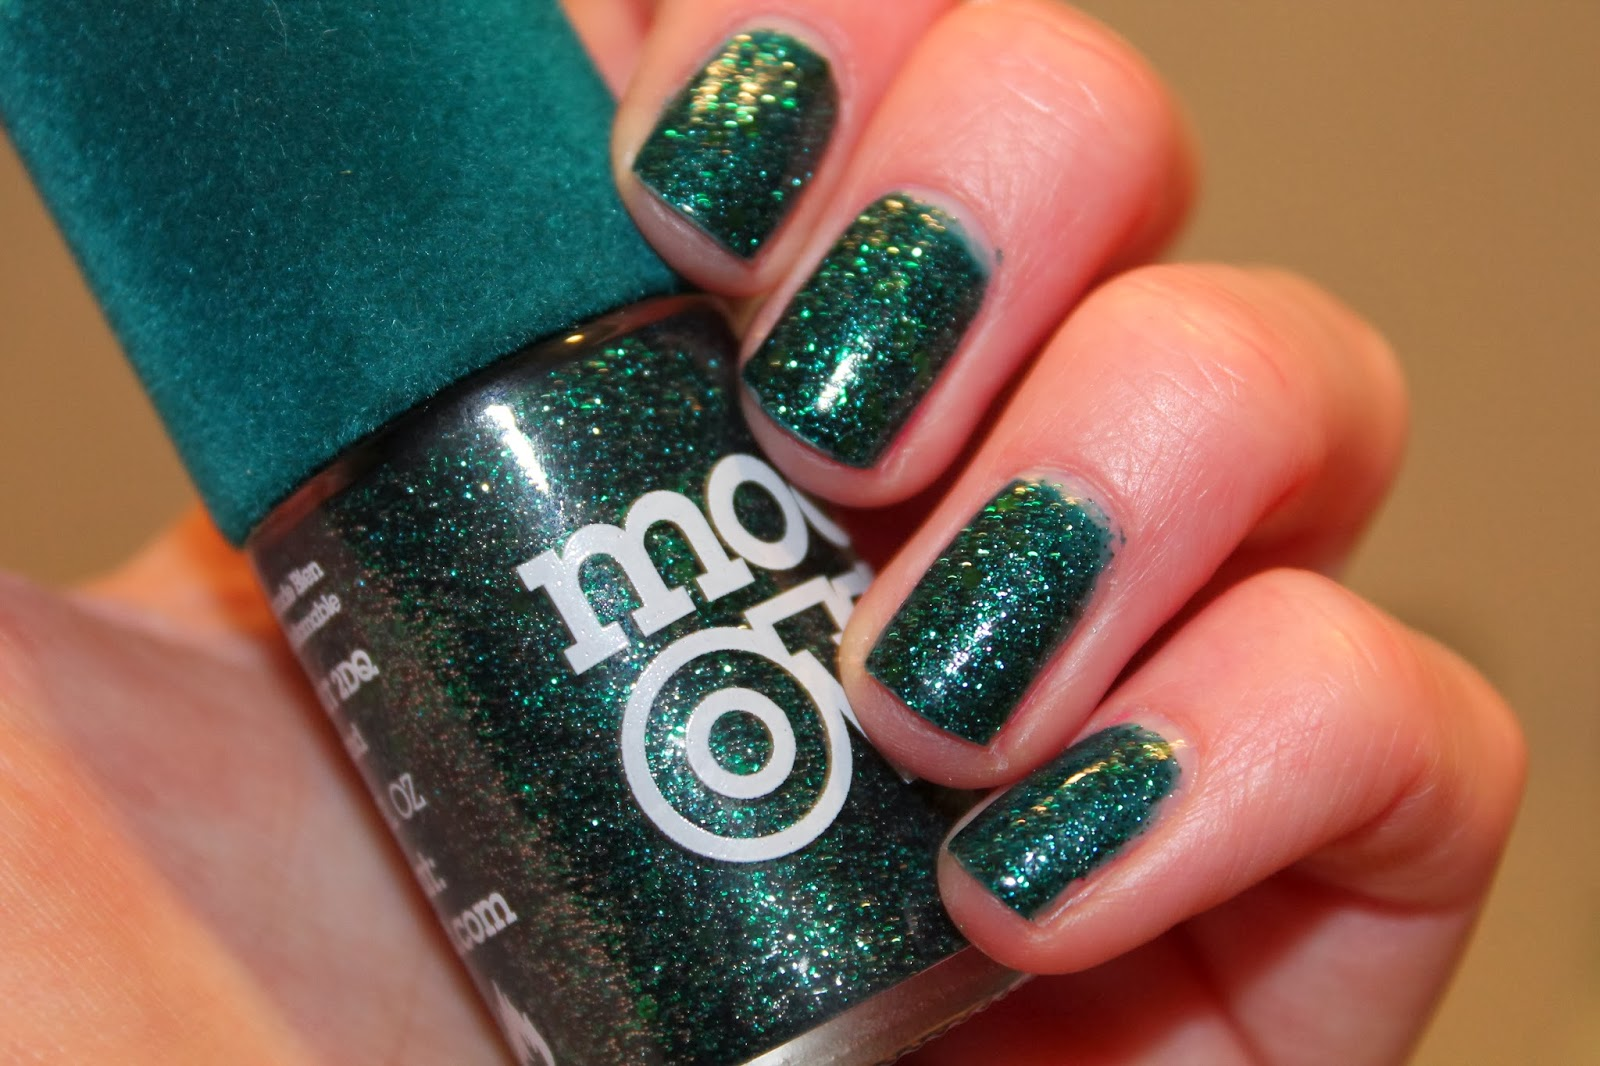 Model's Own - Velvet Goth collection - Absinthe Nail Polish Swatch